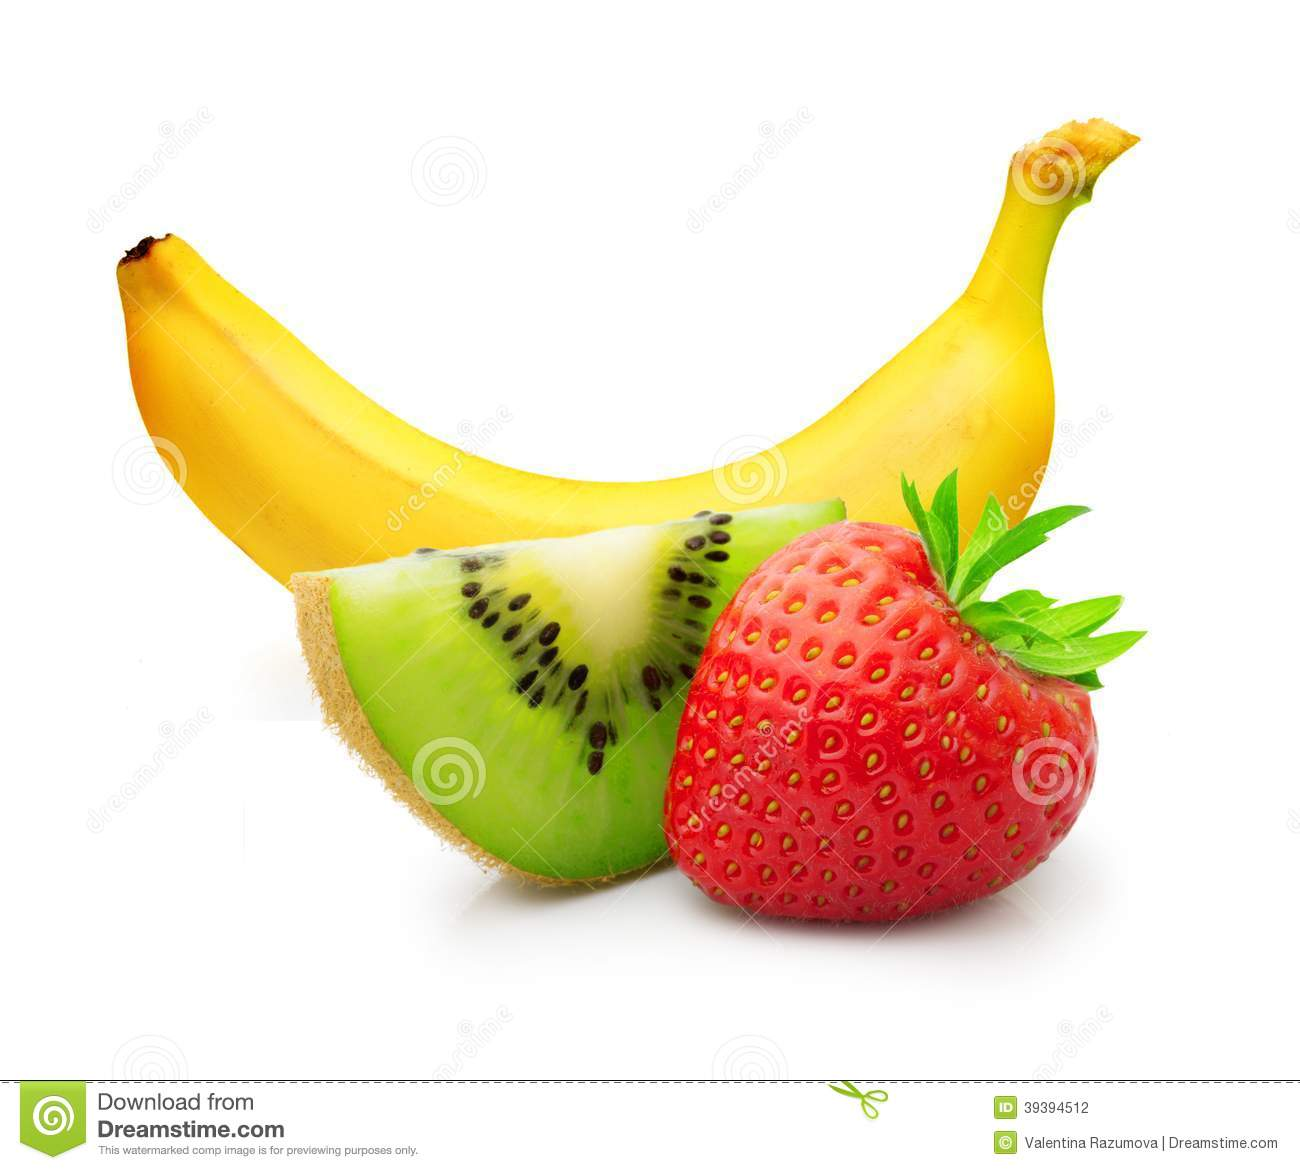 A banana is a fruit or berry. Little known facts about bananas 12